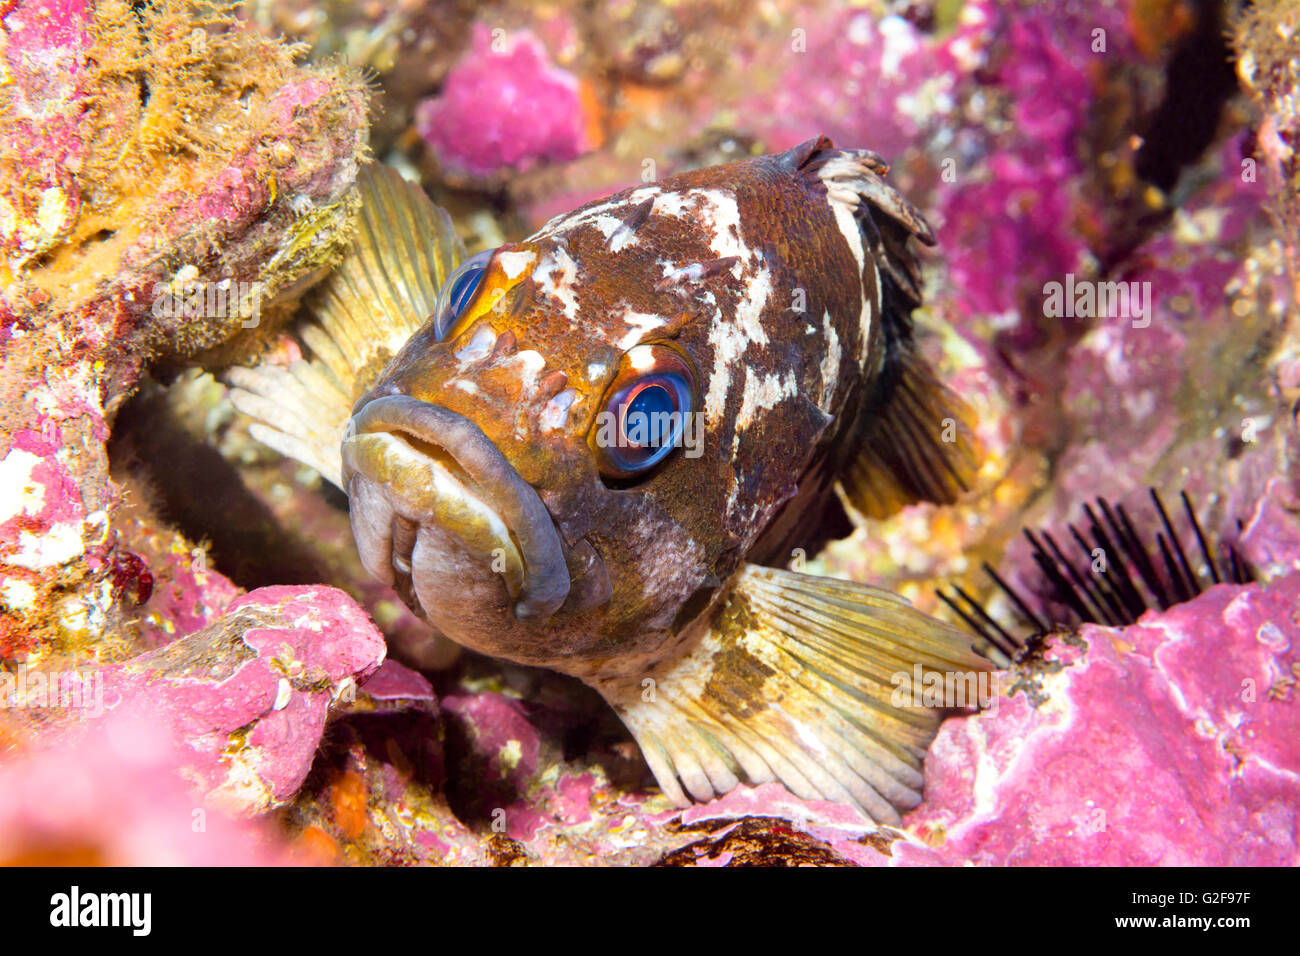 California gopher rockfish uses its fins to wedge itself onto a reef while resting at dusk - Stock Image